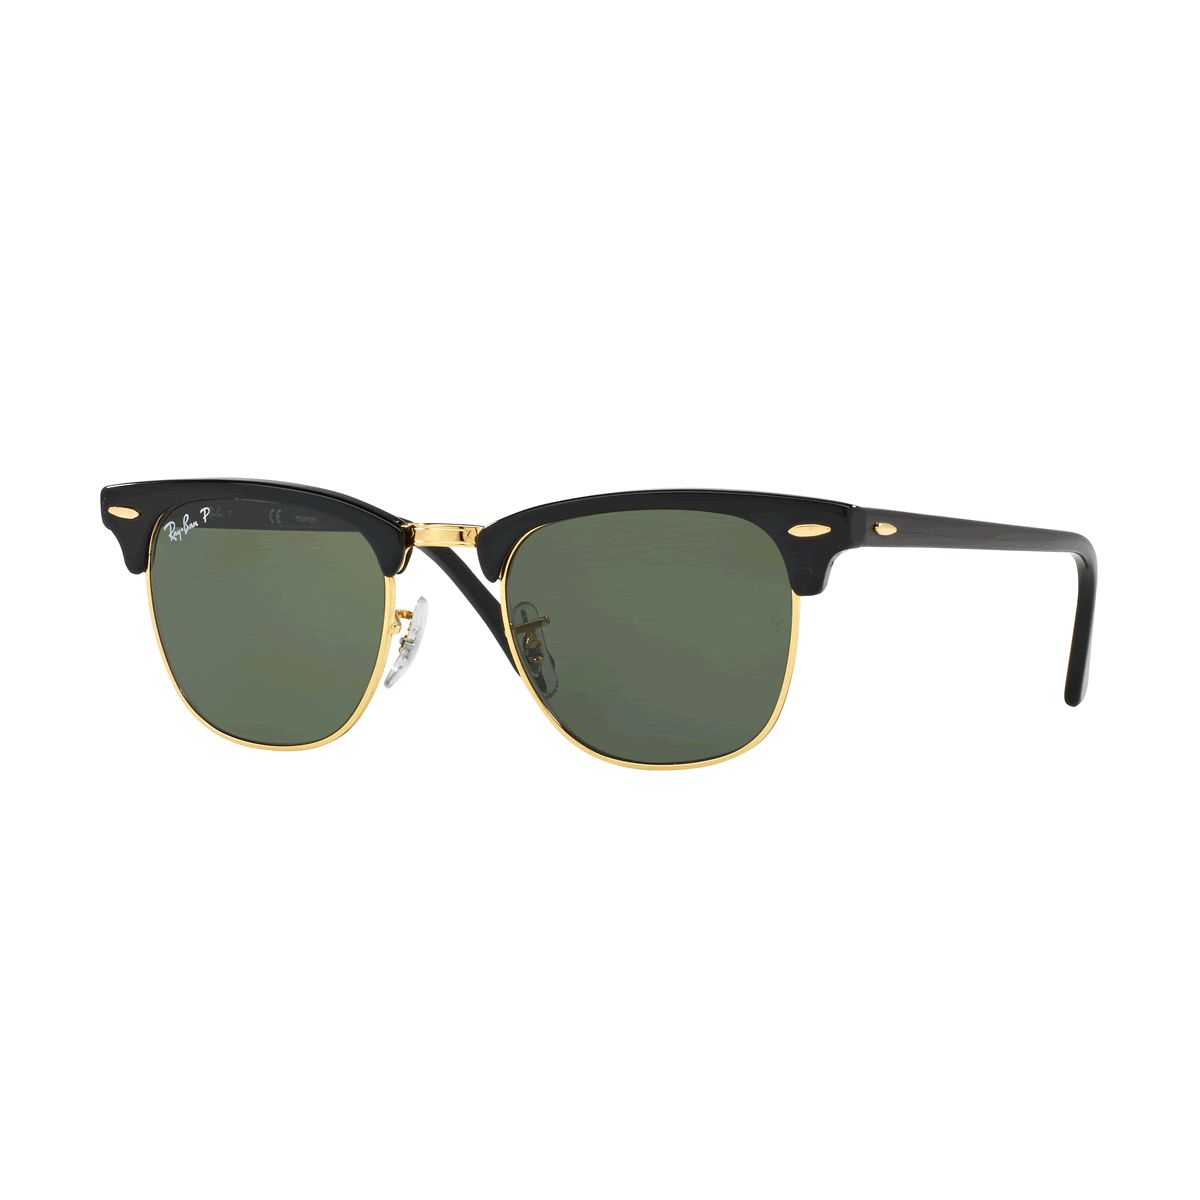 26e3347265c Ray-Ban Sunglasses - Mens   Womens Ray-Bans - Macy s